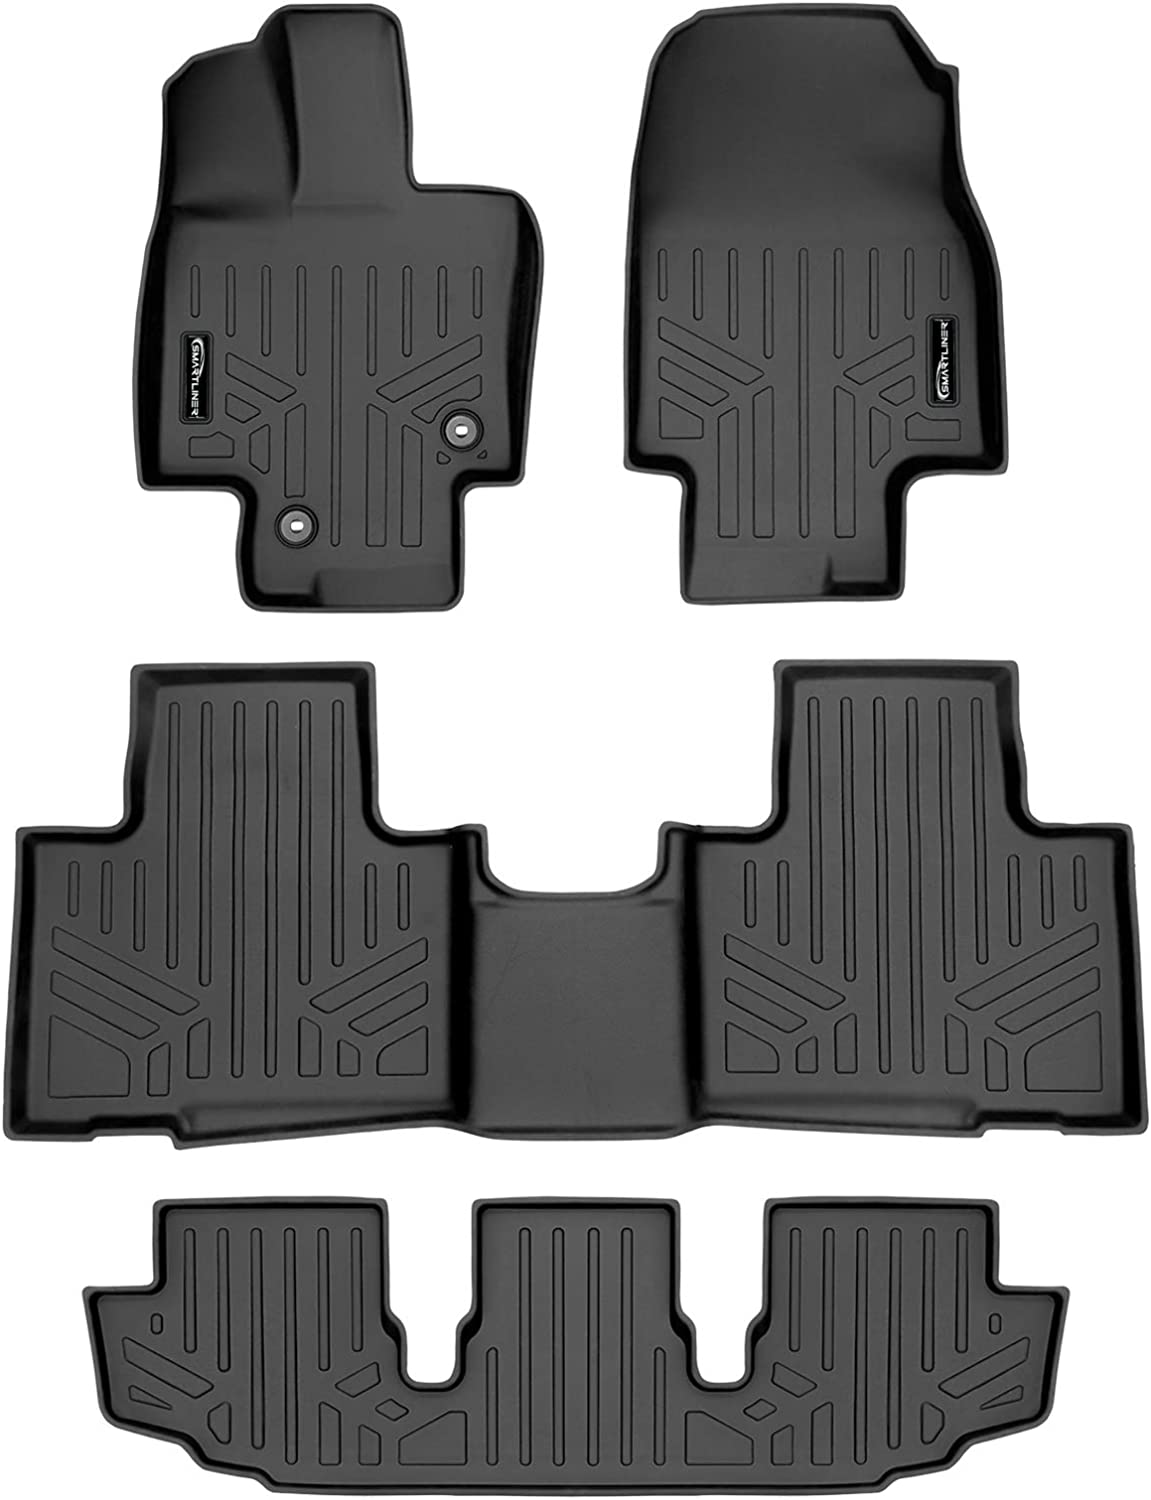 SMARTLINER Floor Mats 3 Row Liner Set Black for 2020-2021 Highlander Fits W// 2nd Row Bench or Bucket Seats w//Center Console